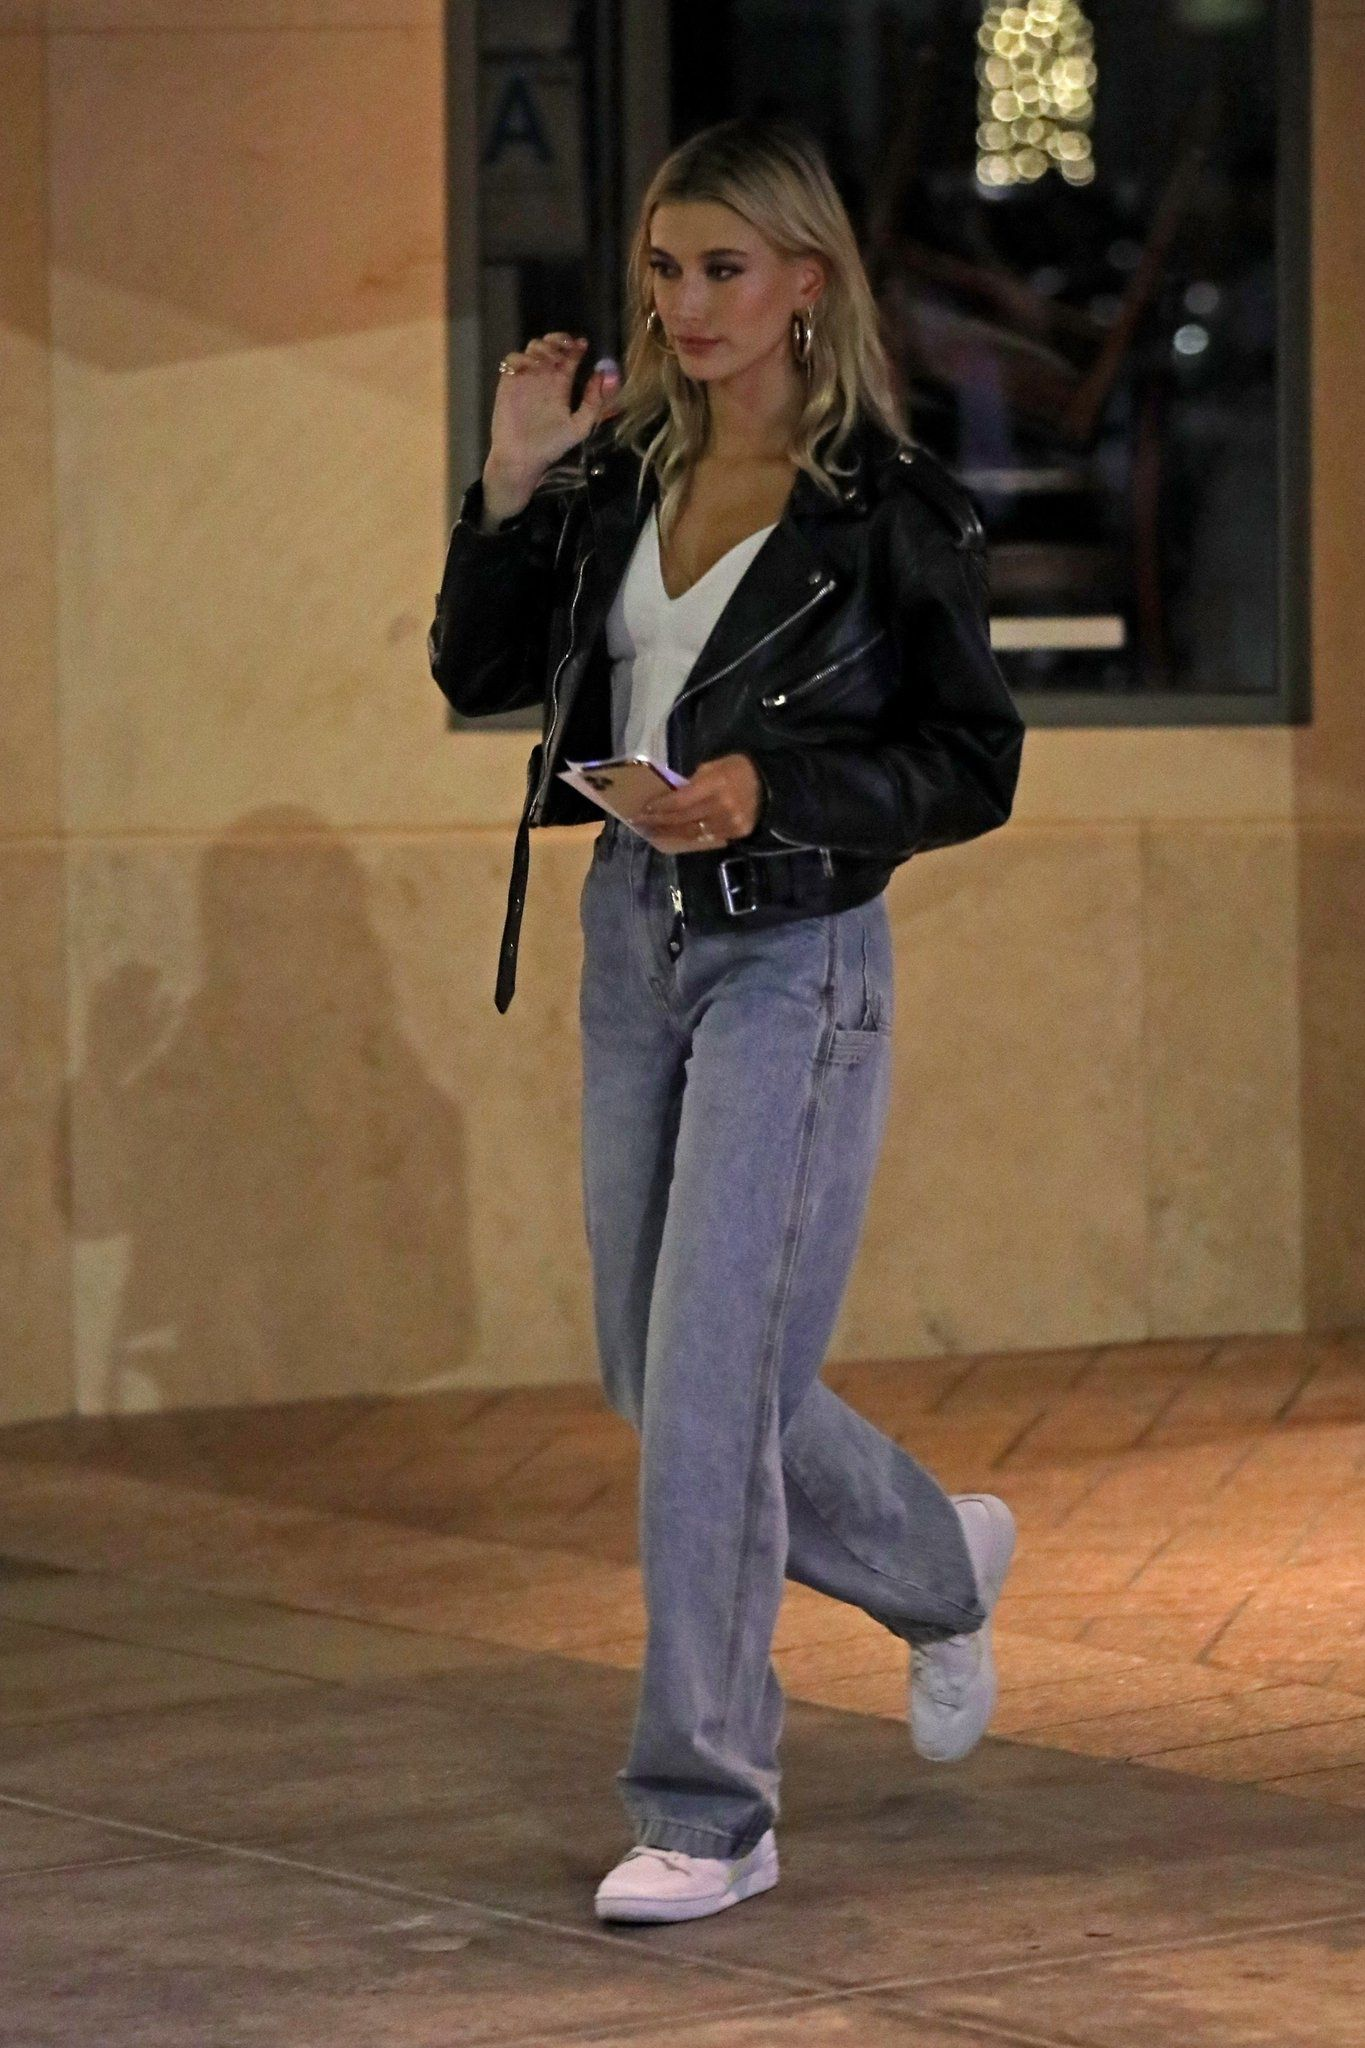 Pin by Jana Becker on hailey's style | Trendy outfits